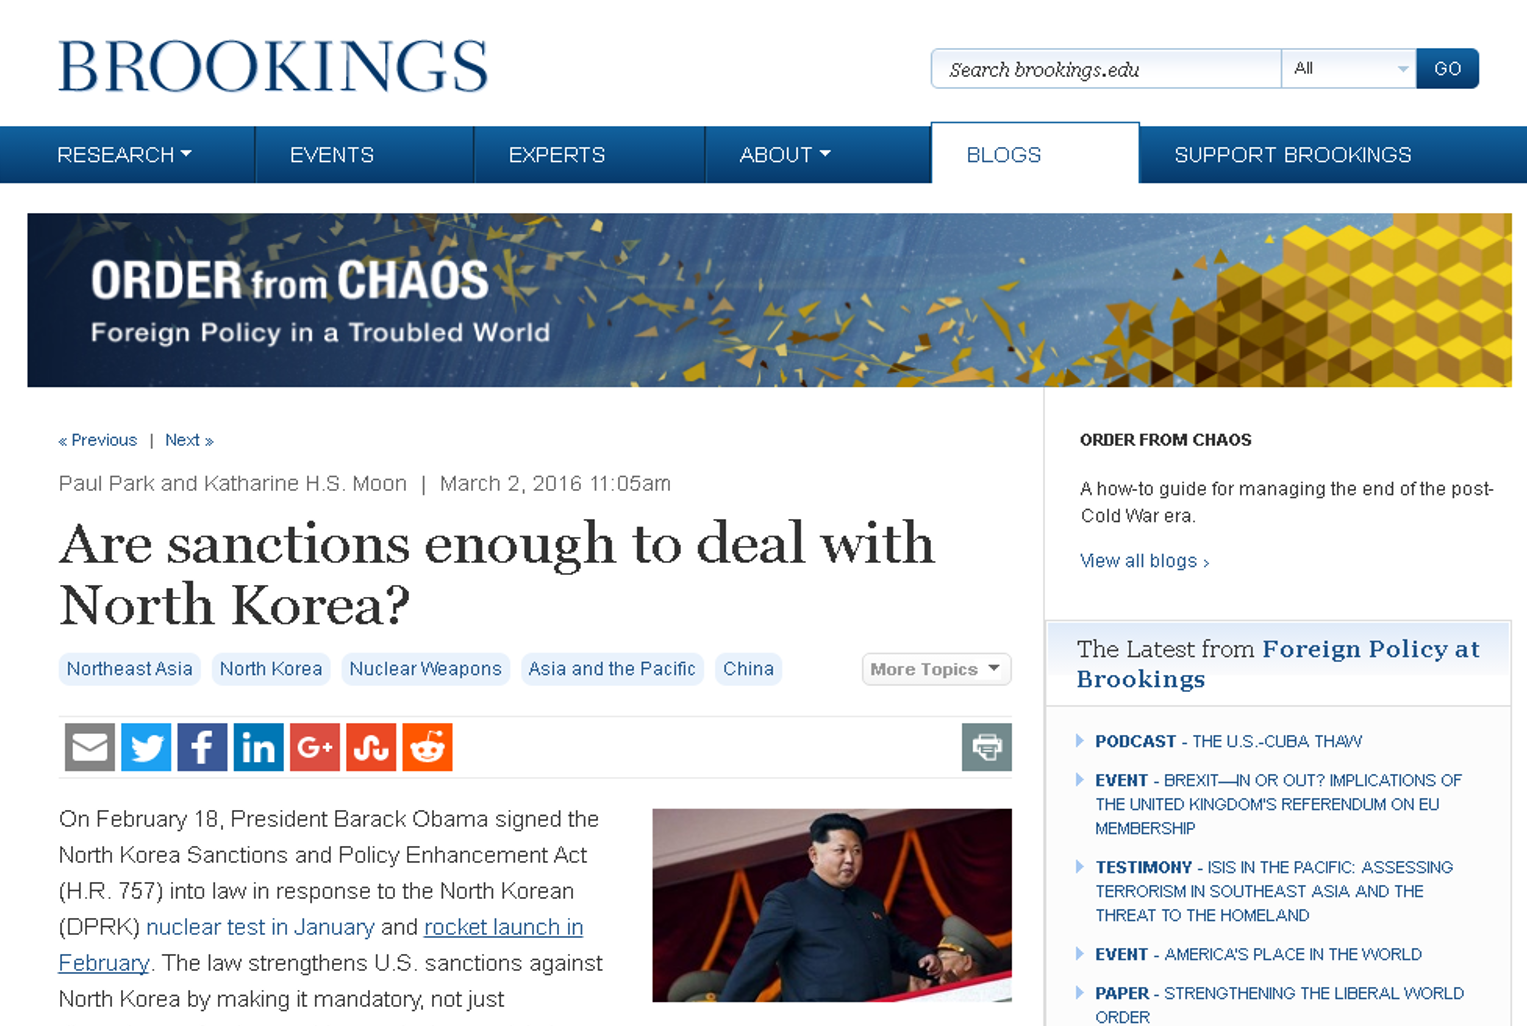 K H S (2016, March 2) Are Sanctions Enough To Deal With North Korea?